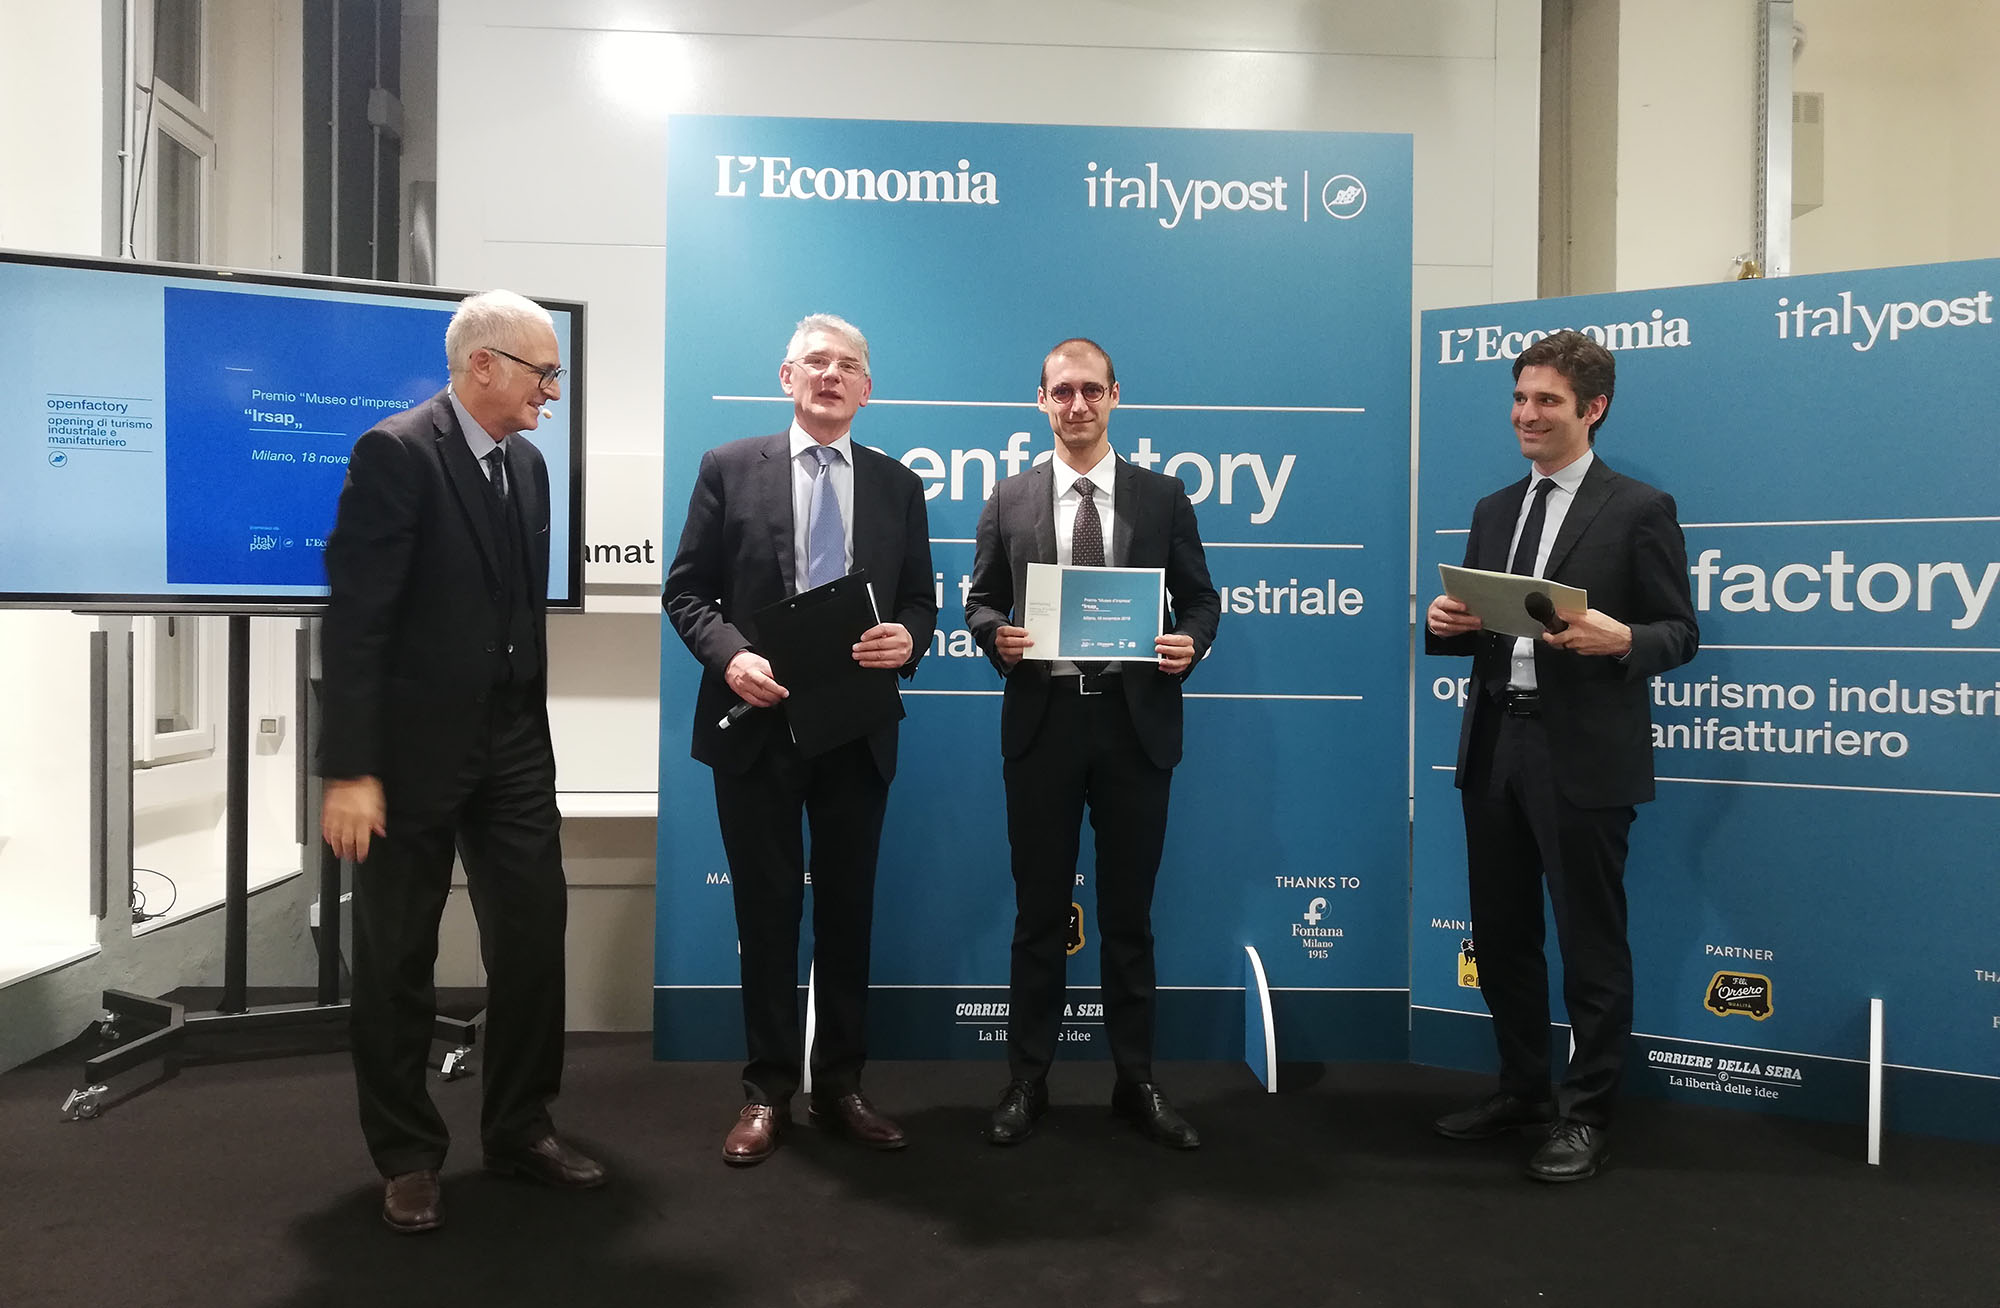 OpenFactory Business Museum Award 2019